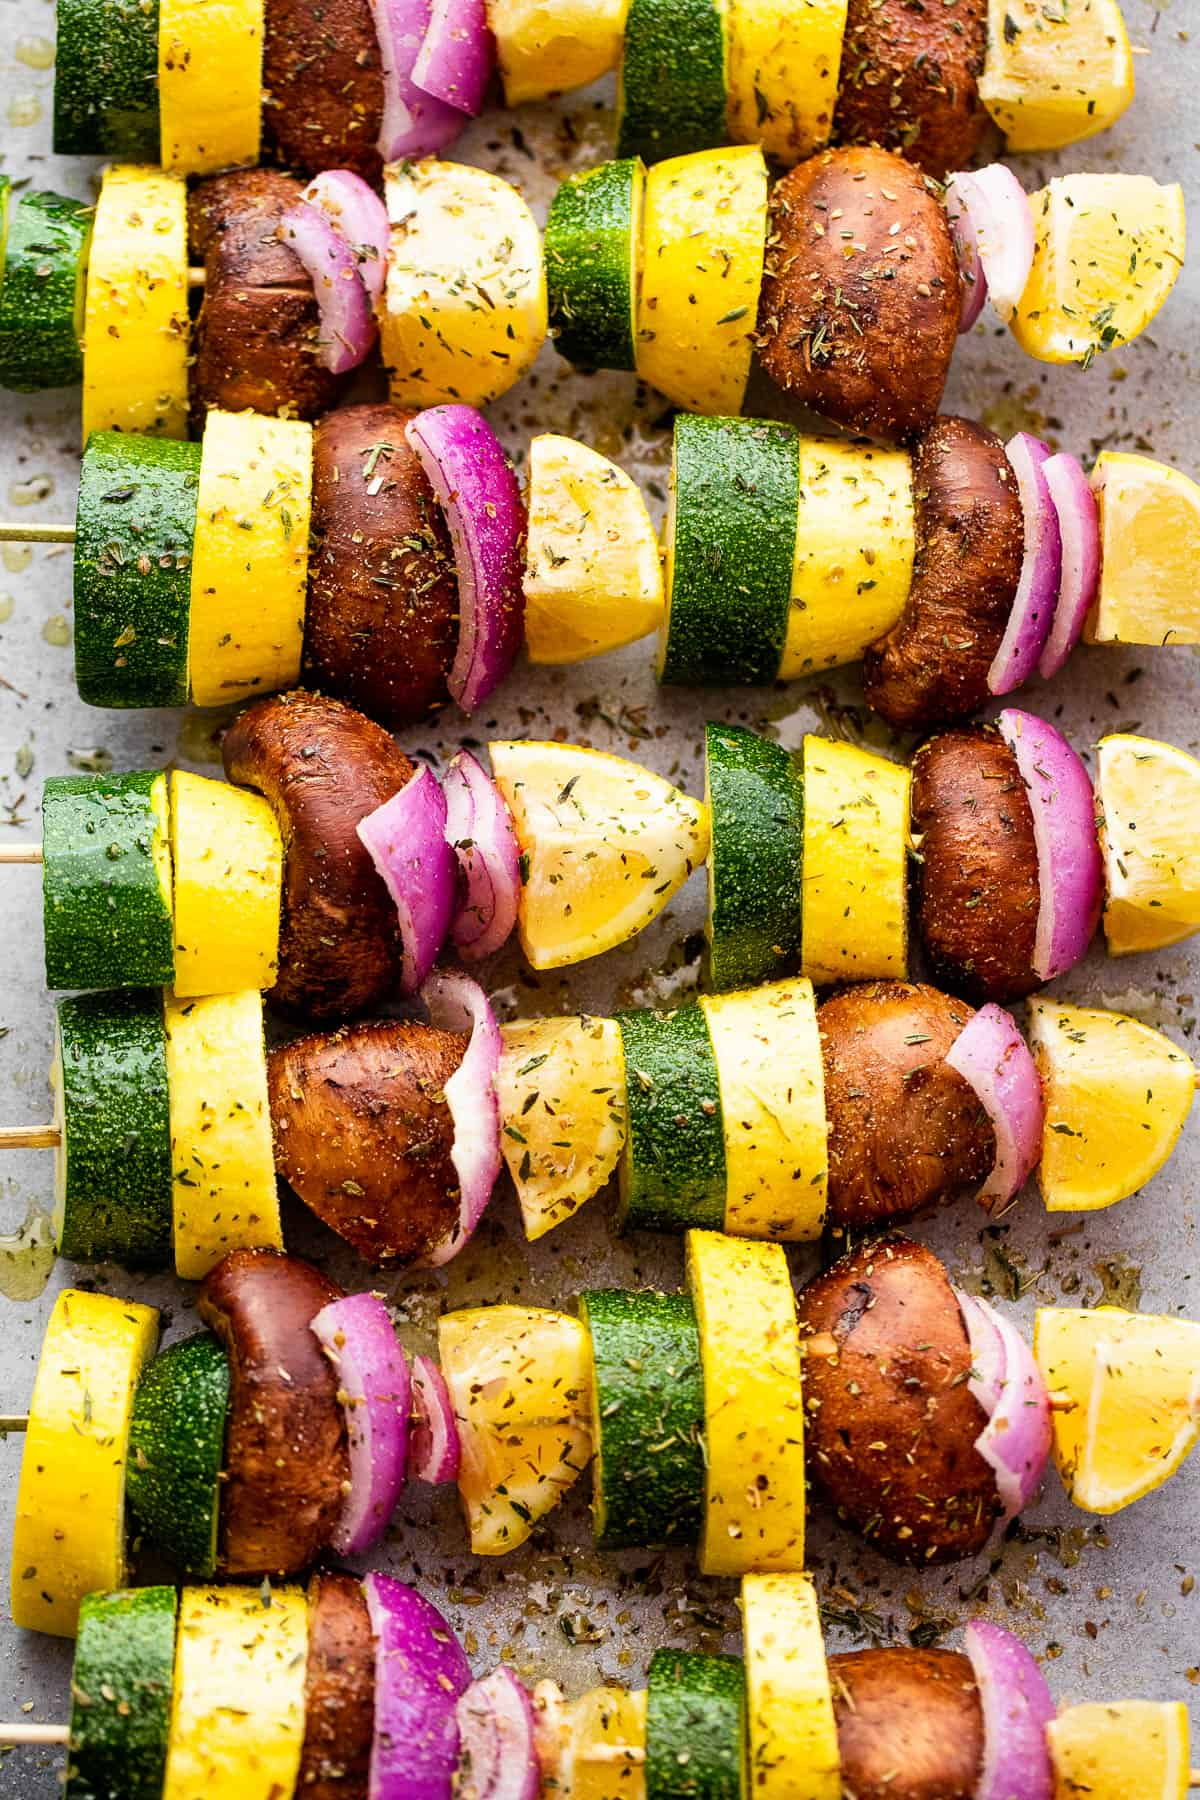 eight squash, red onions, lemons, and mushrooms threaded on wooden skewers